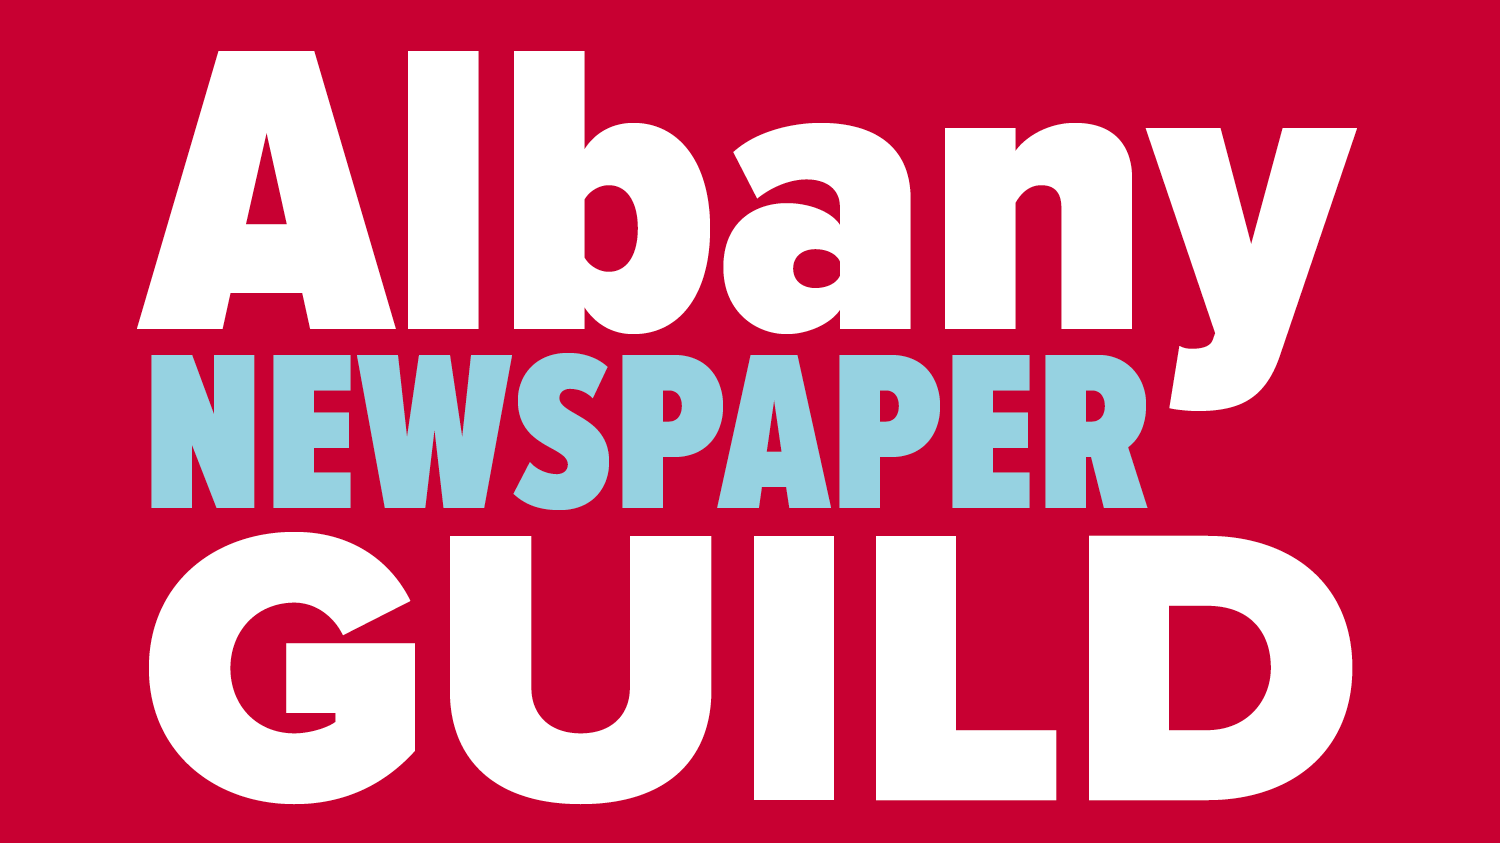 Albany Newspaper Guild